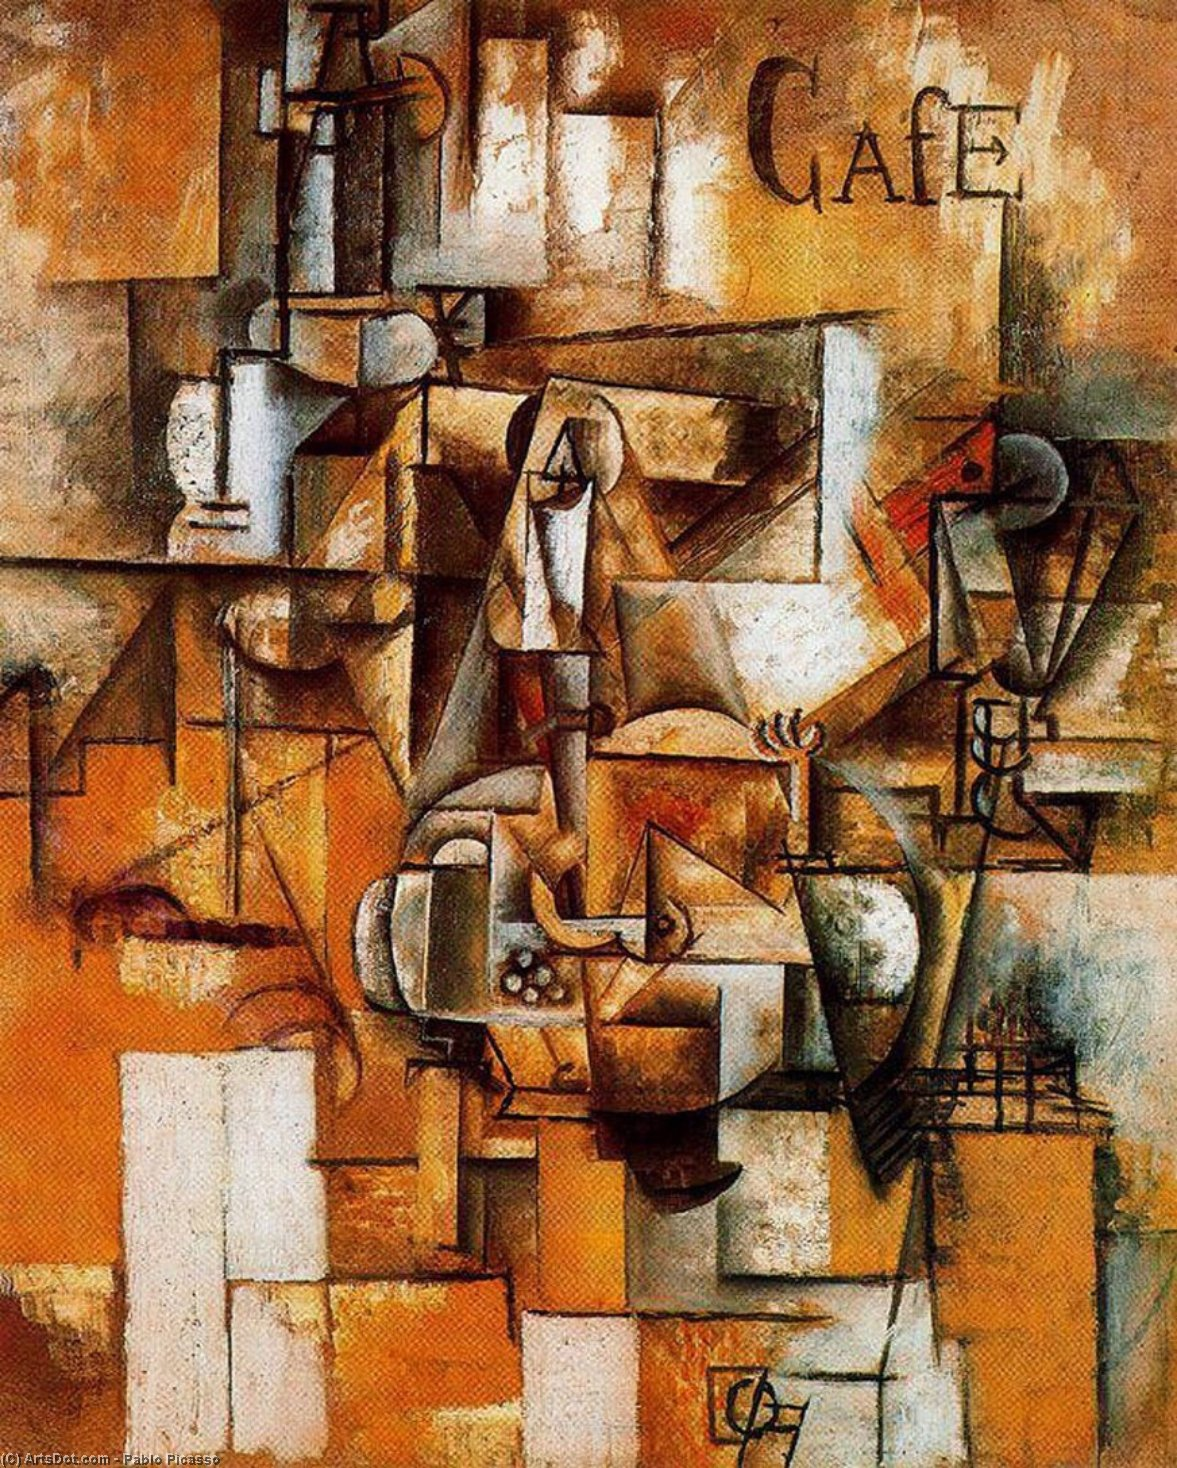 an analysis of the life and styles of pablo picasso La vie (life) by pablo picasso regarded as one of the greatest 20th century paintings la vie (life) (1903) contents • description • analysis • interpretation • explanation of other paintings by picasso.